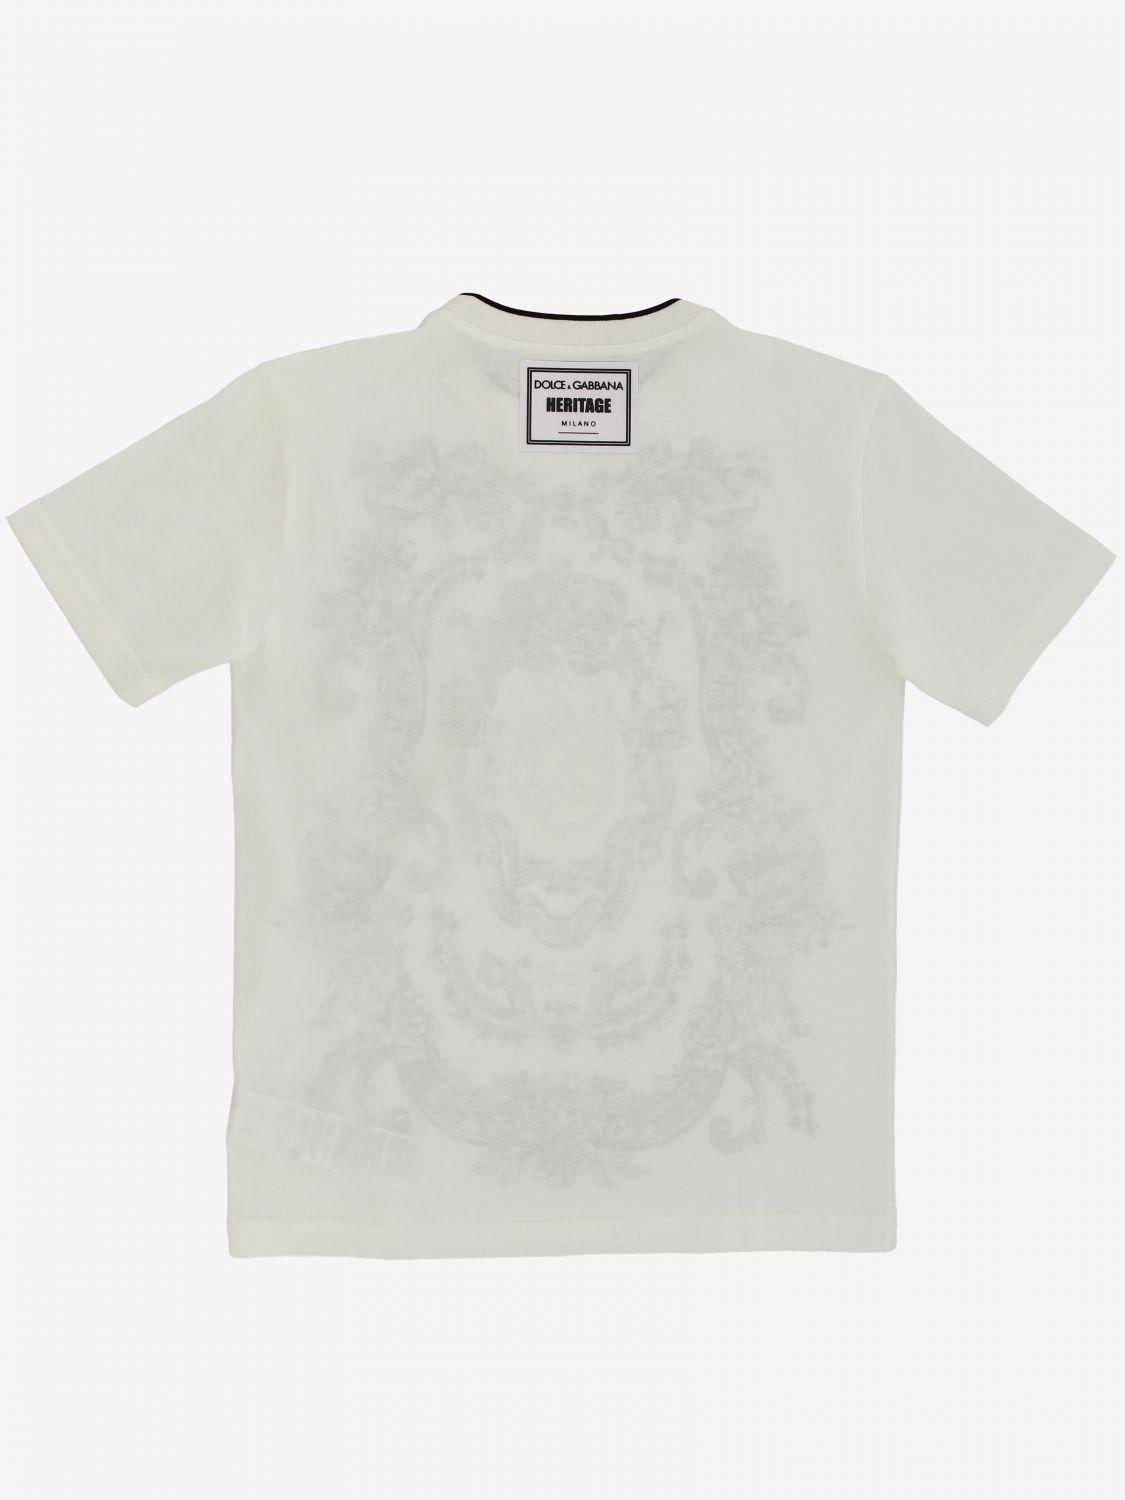 T-shirt Dolce & Gabbana: T-shirt kids Dolce & Gabbana yellow cream 2